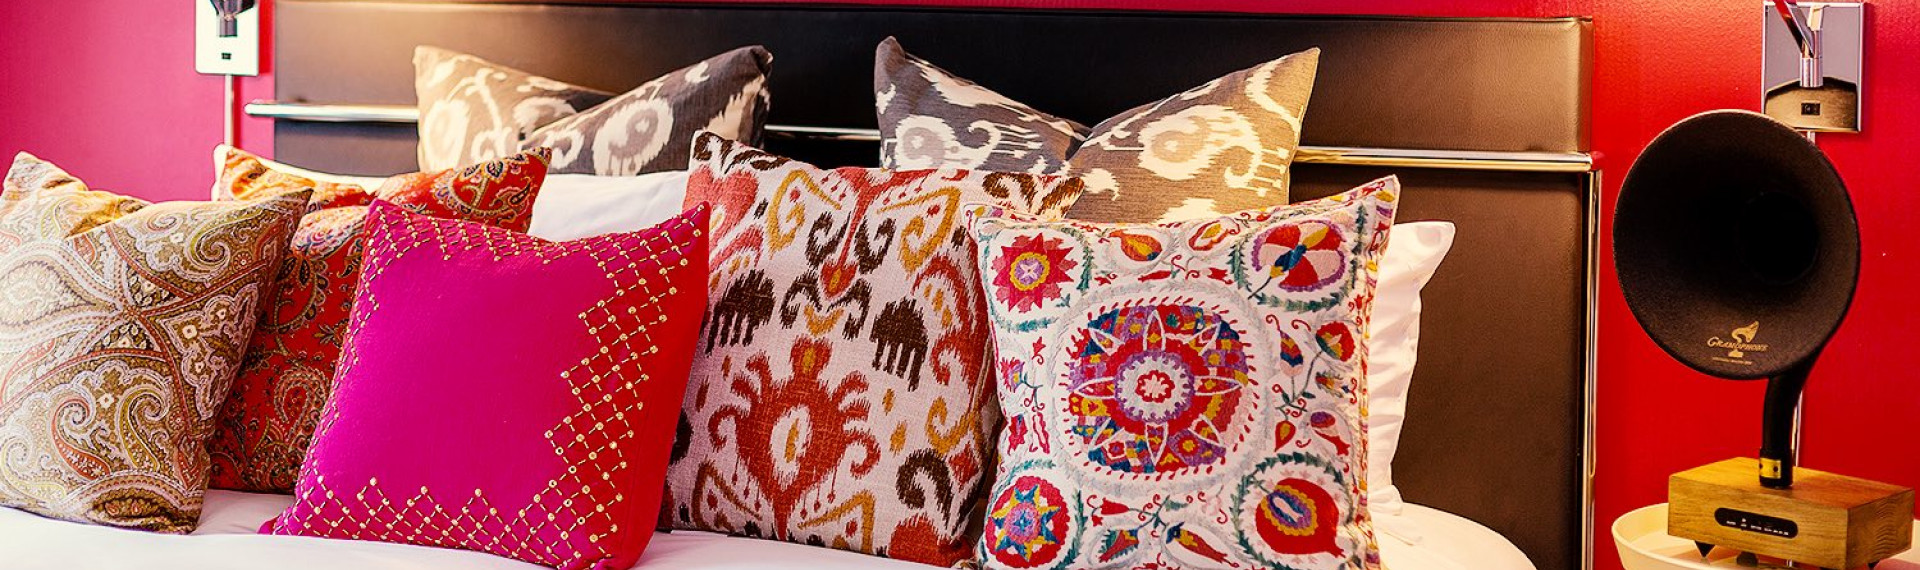 Red, pink, and brown decorative patterned pillows on a bed with a black headboard against a red wall